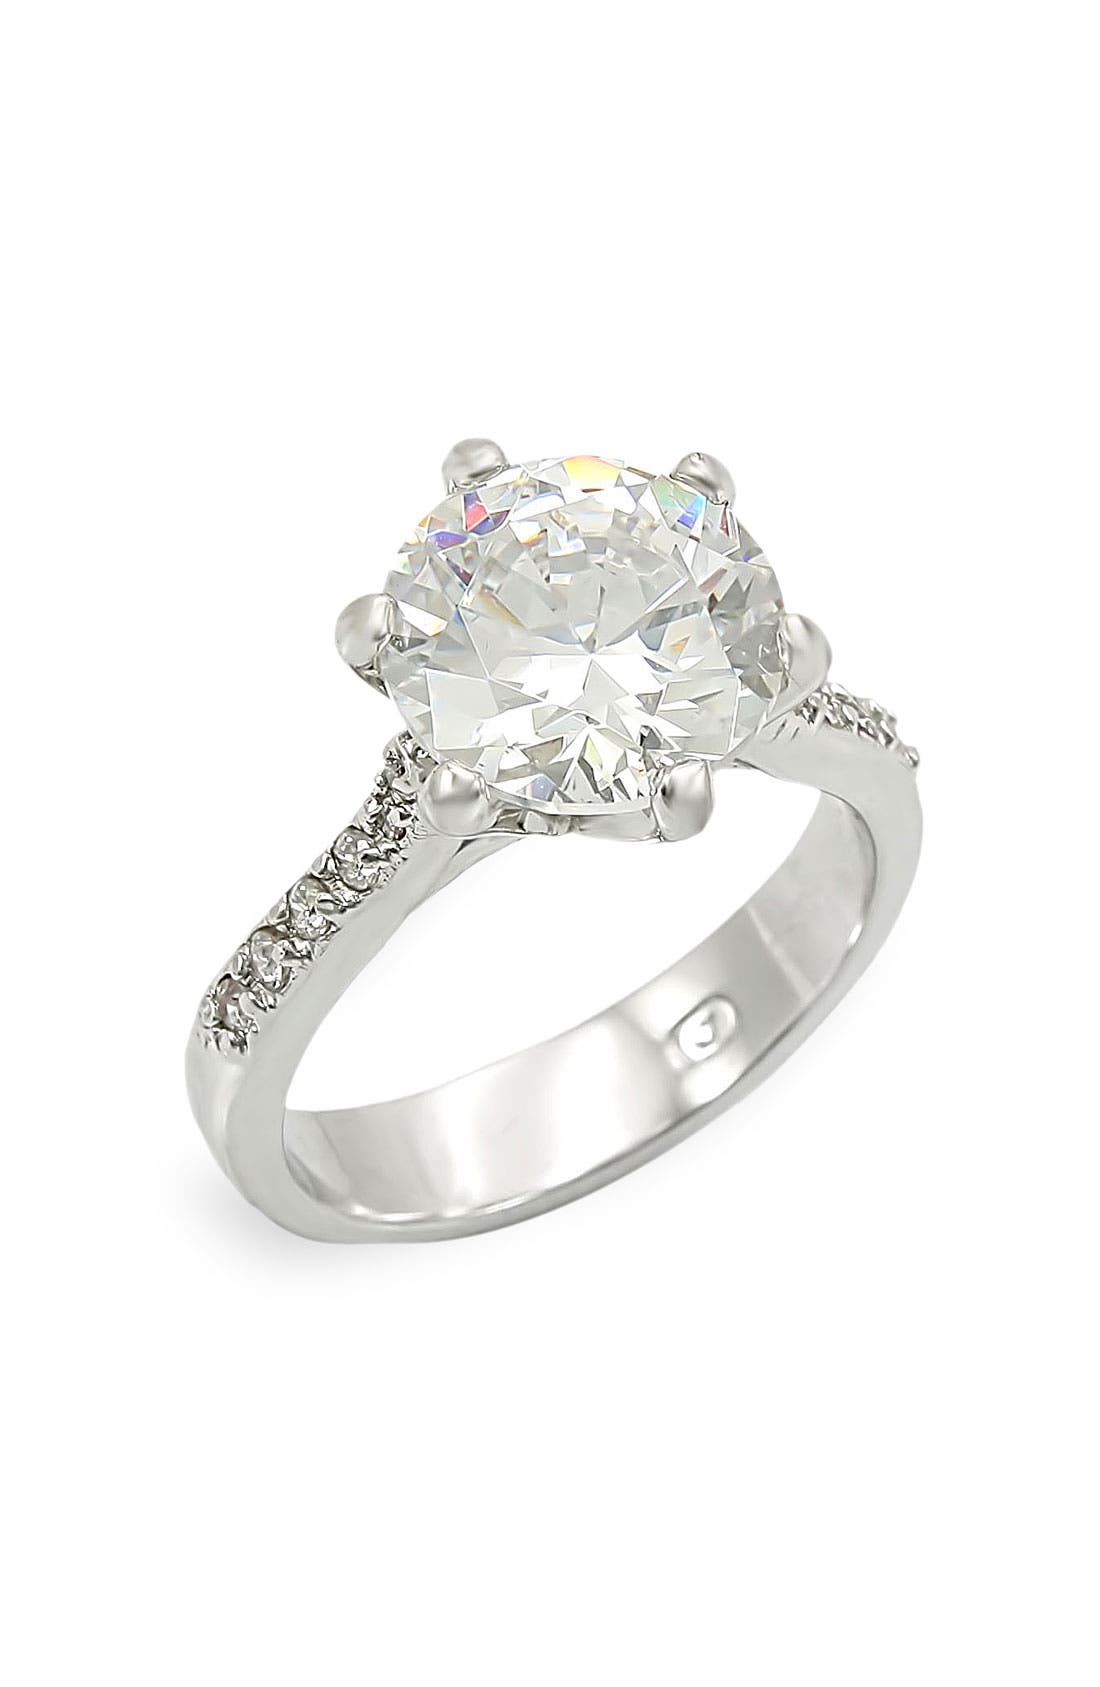 Main Image - Ariella Collection Round Cut Cubic Zirconia Ring